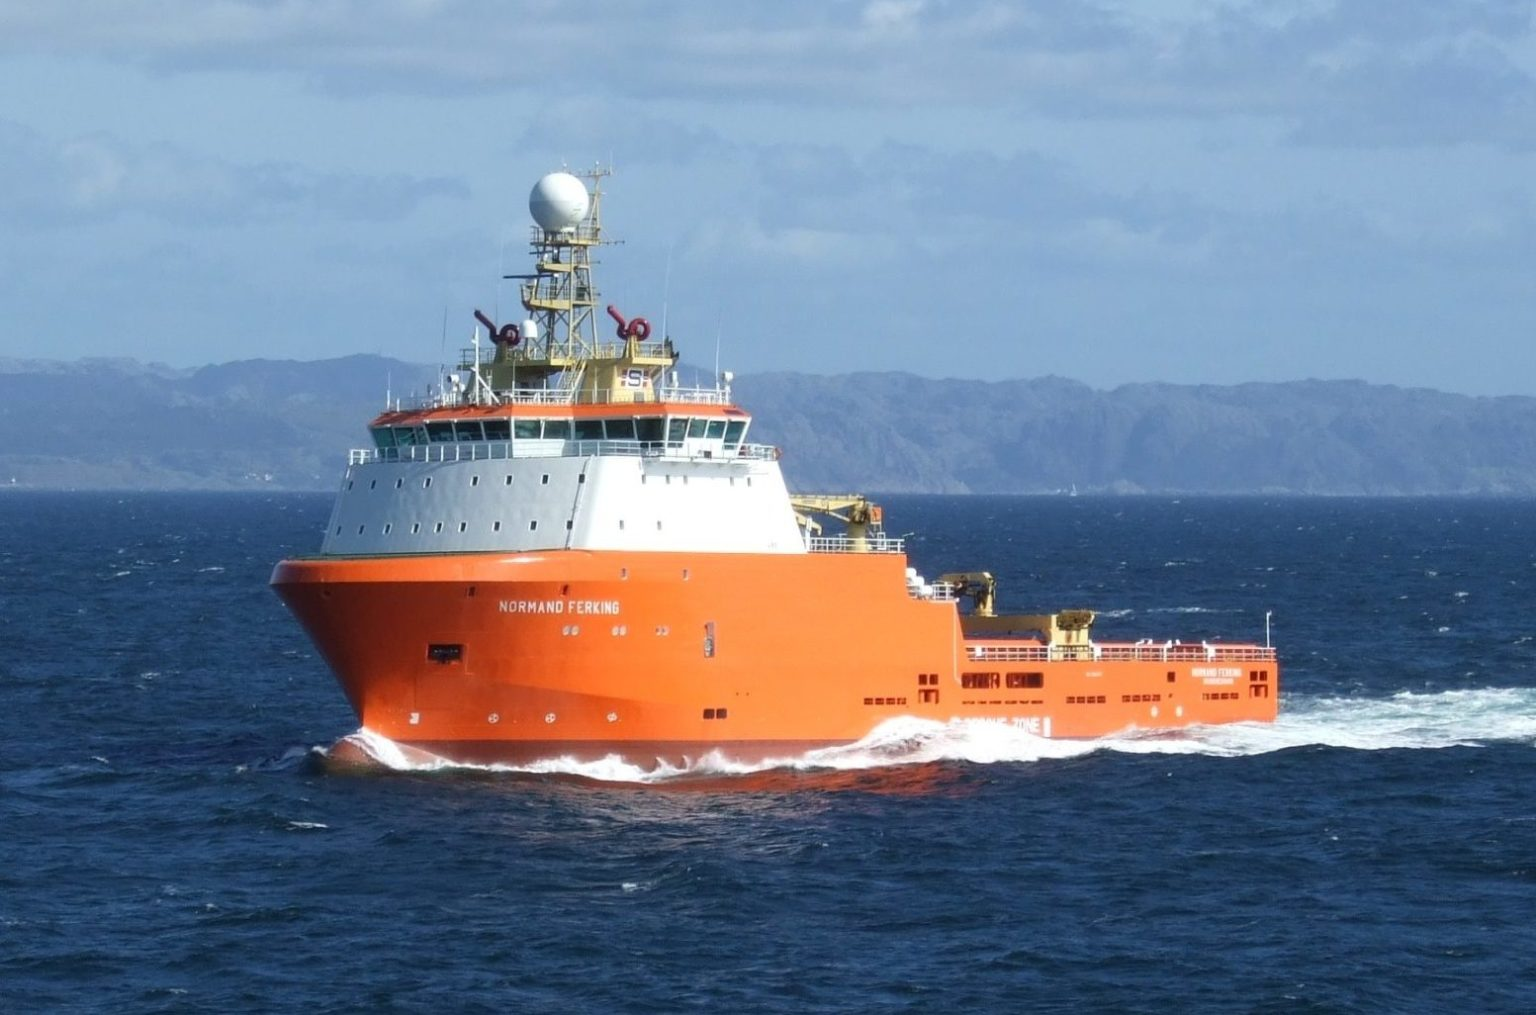 Solstad Offshore announces contract extensions with key clients in Norway